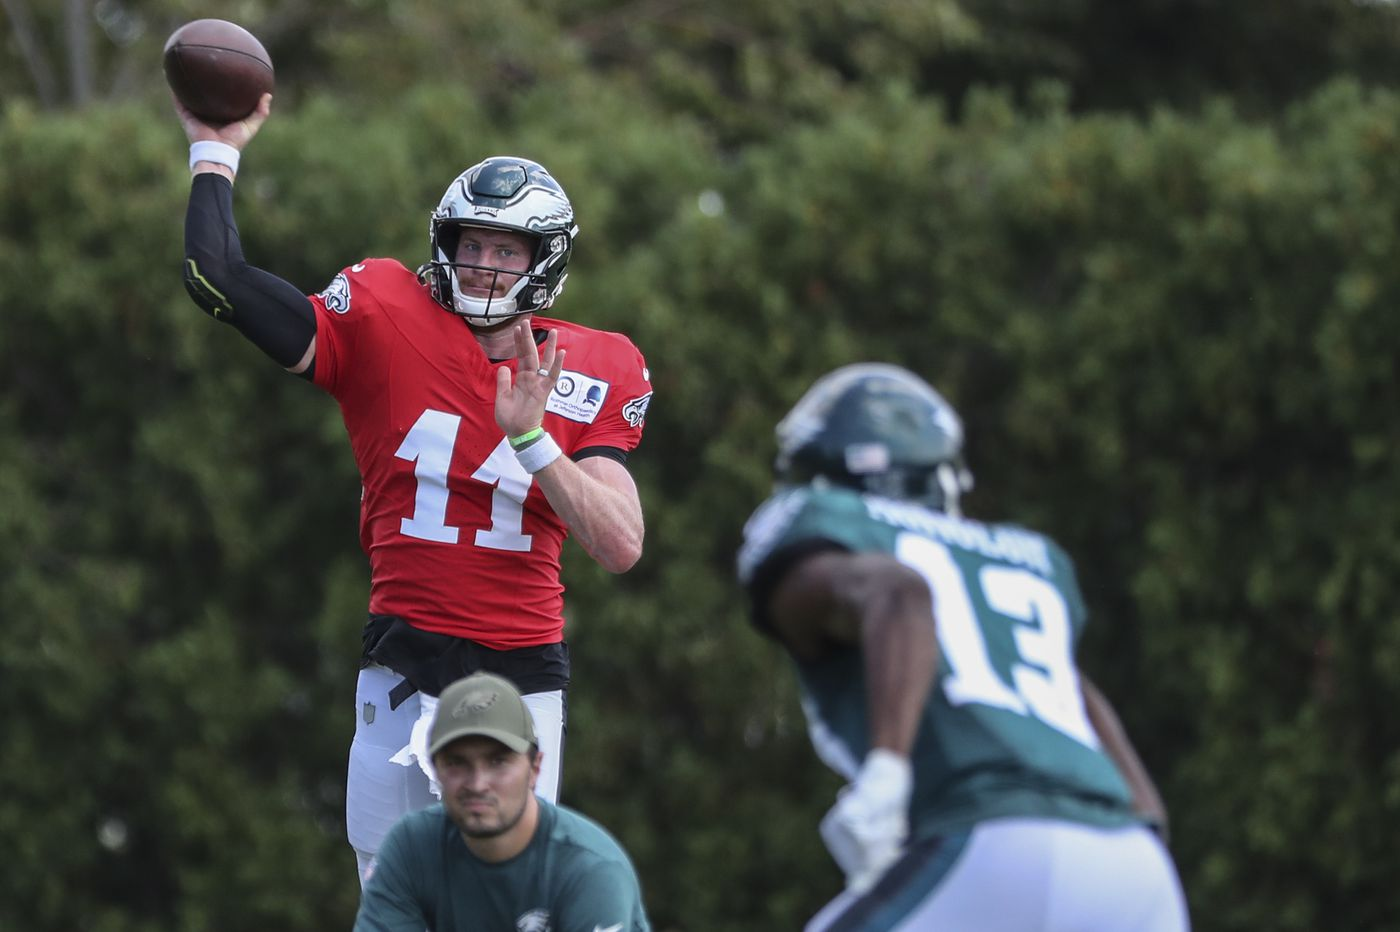 Carson Wentz says he and the Eagles offense are ready to hit the ground running, and throwing